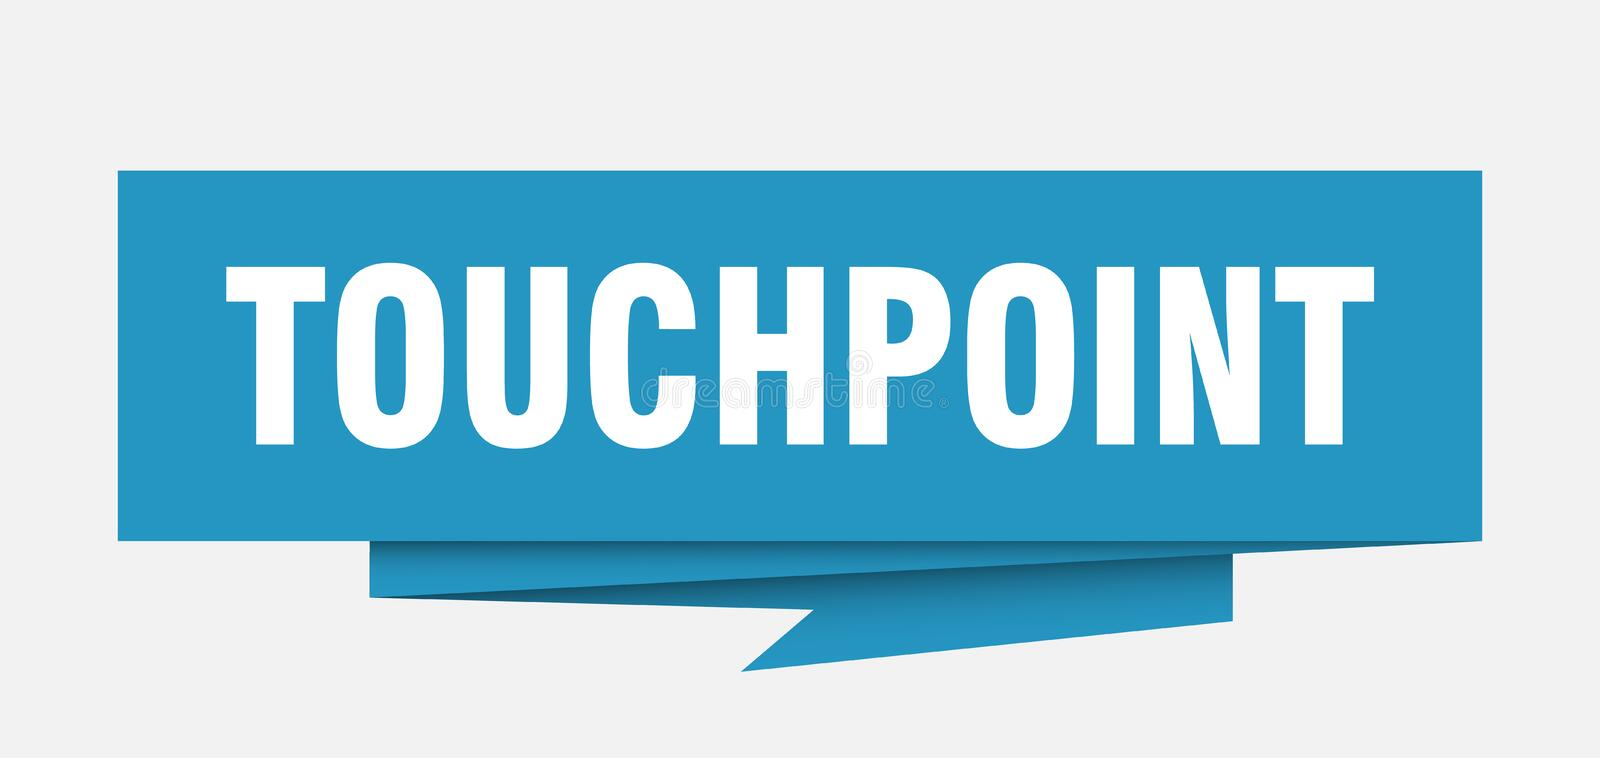 touchpoint ilustracji